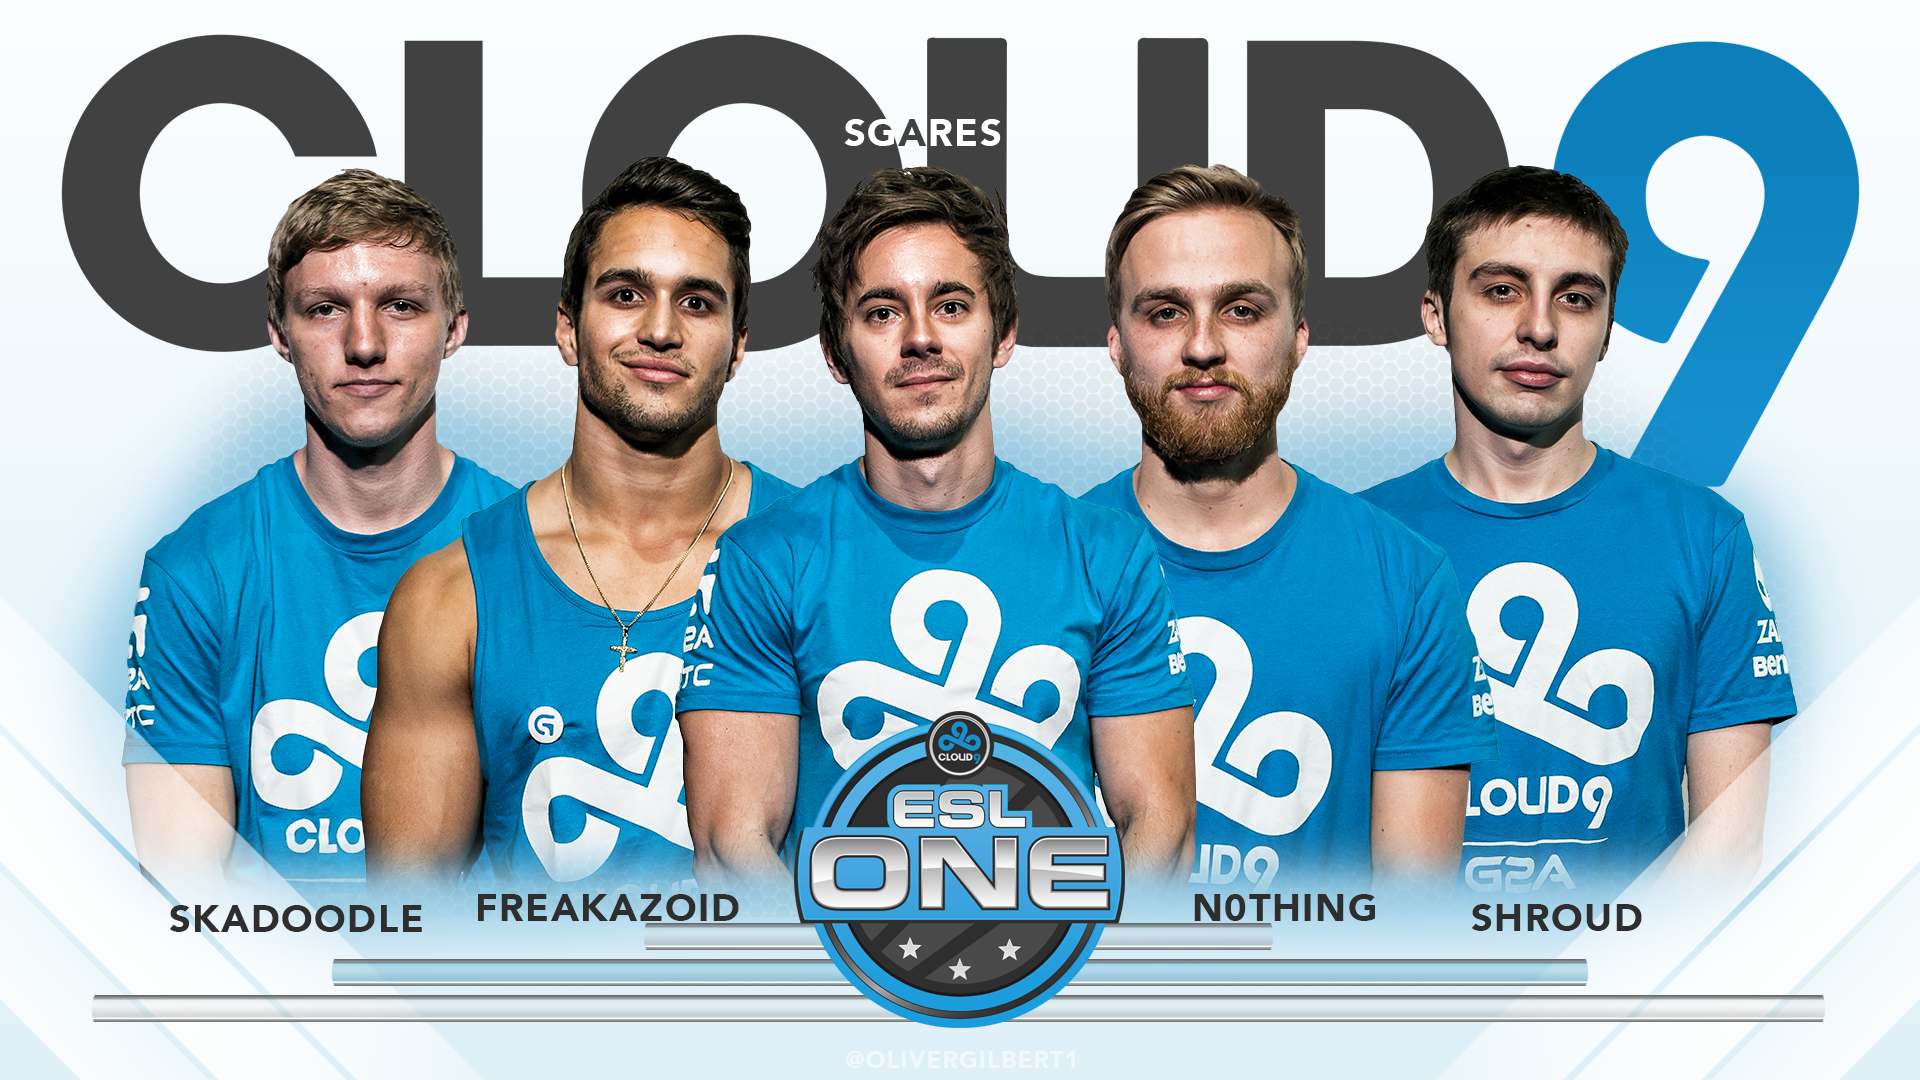 ESL ONE Team Cloud9